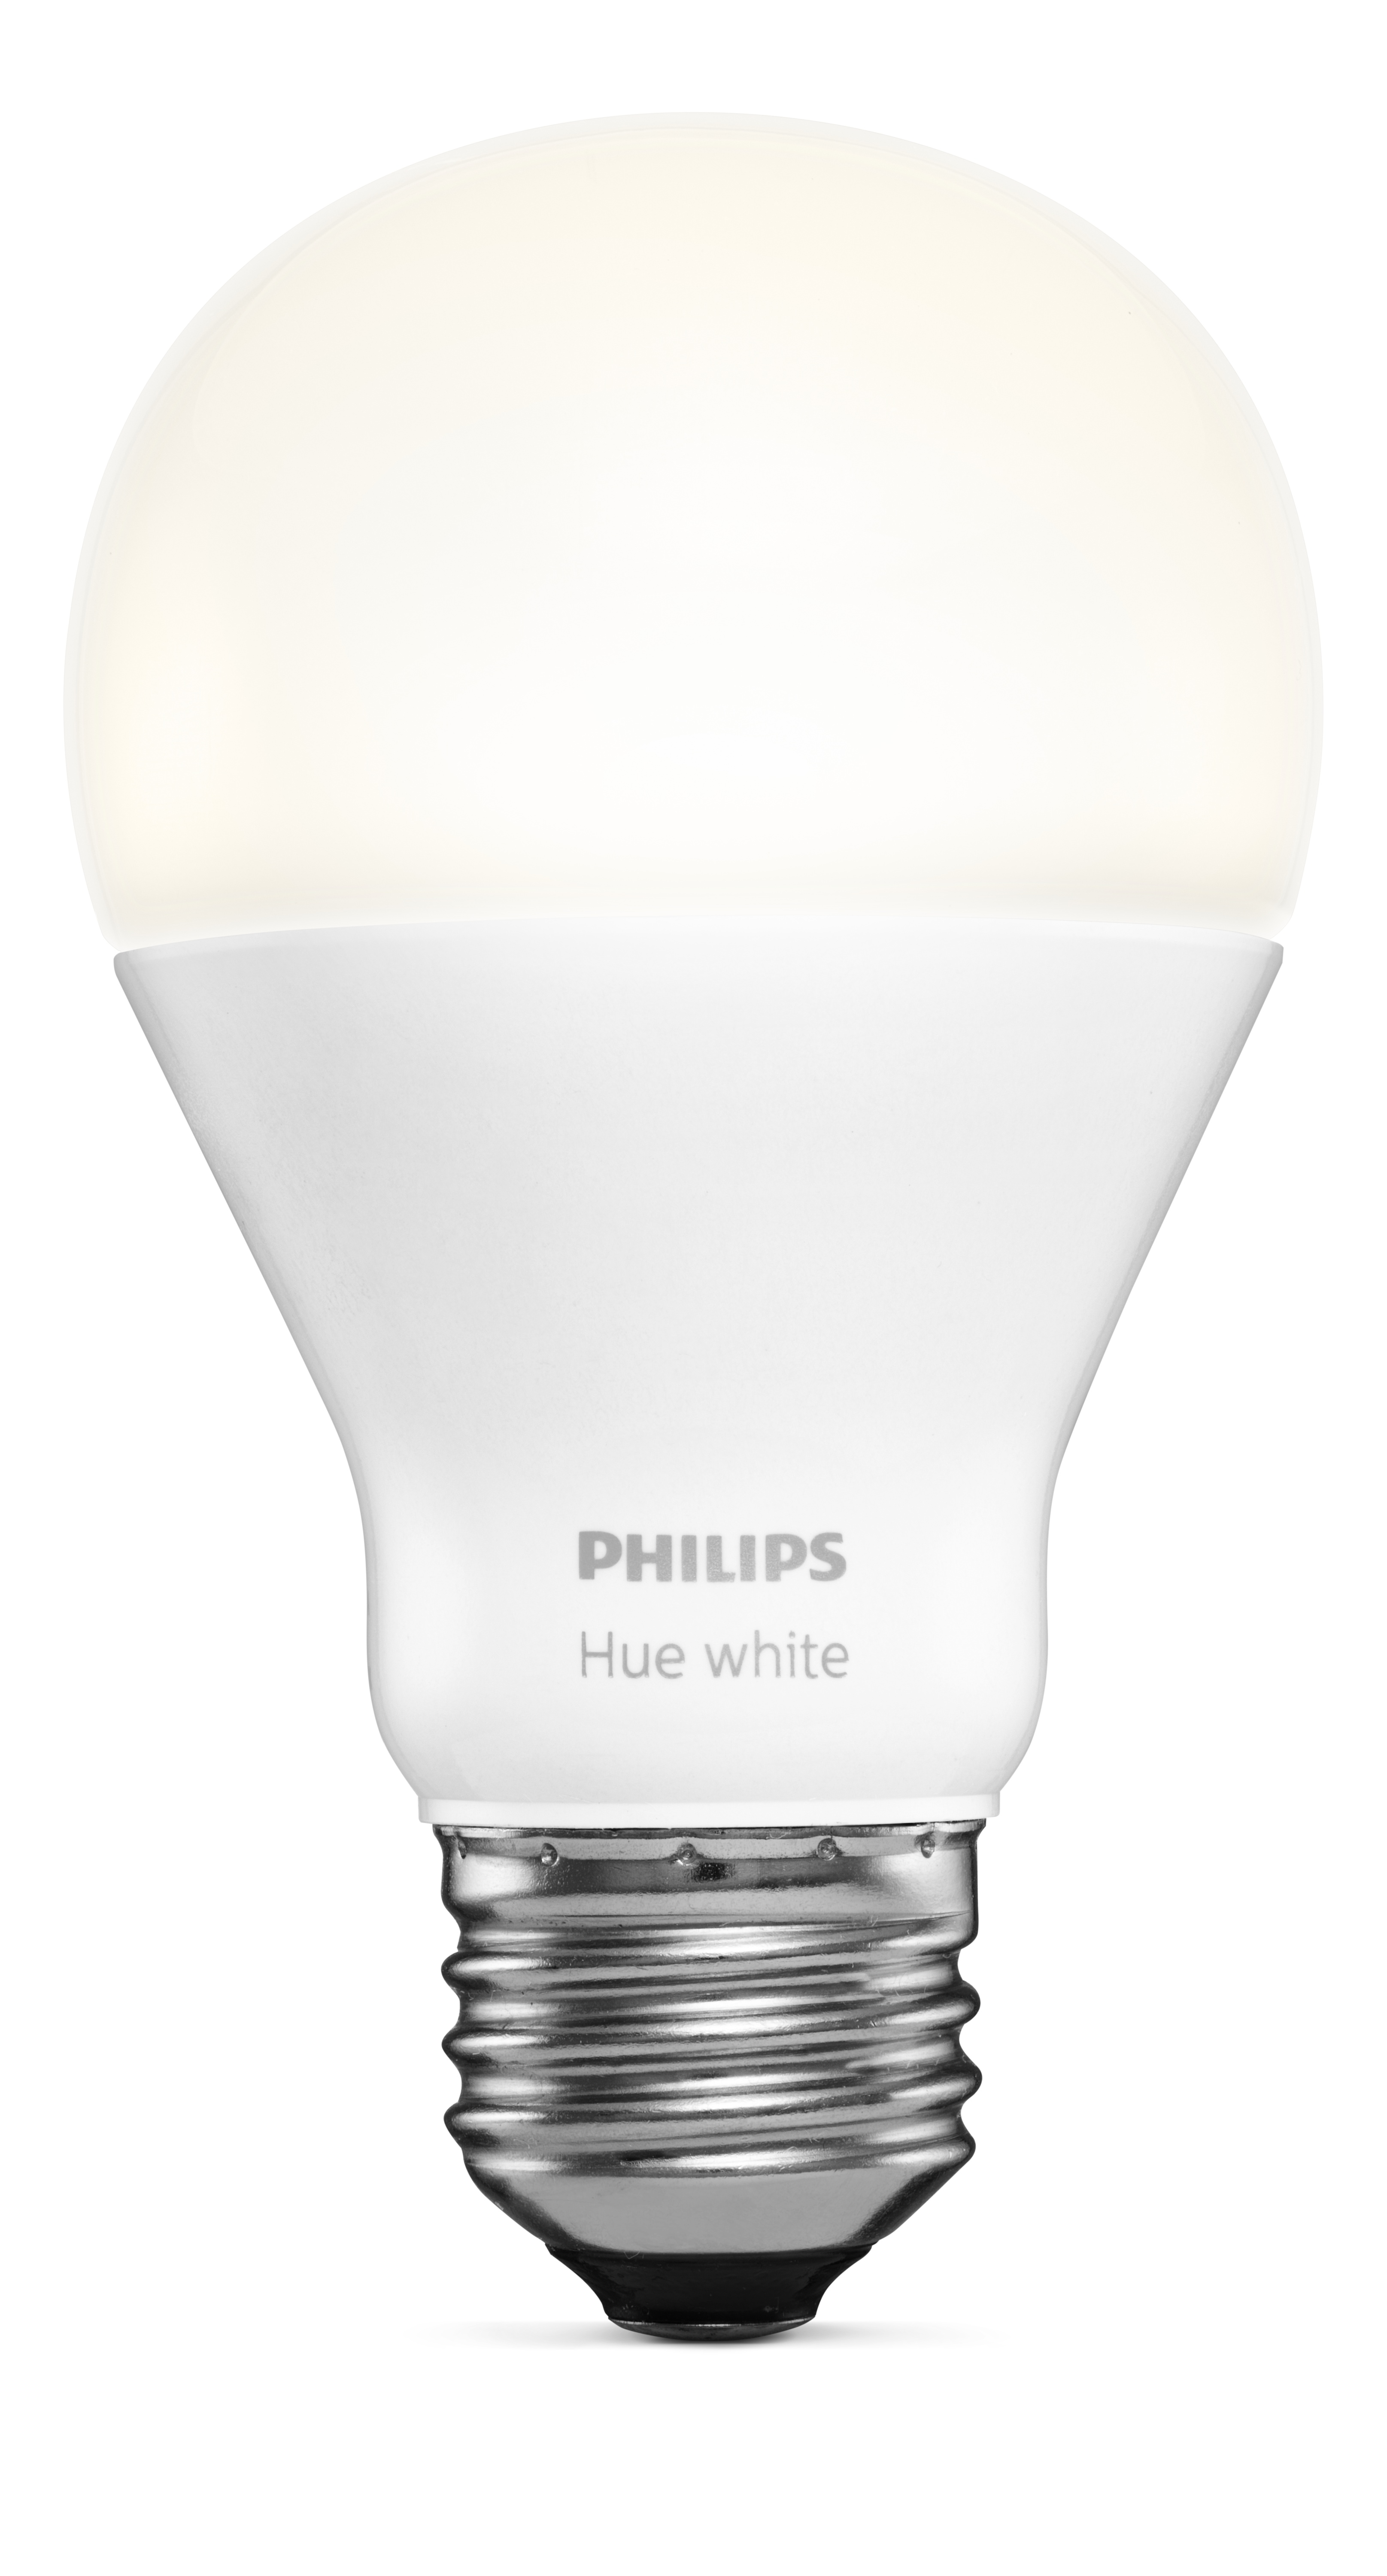 Philips Hue White Extension Bulb - Education - Apple